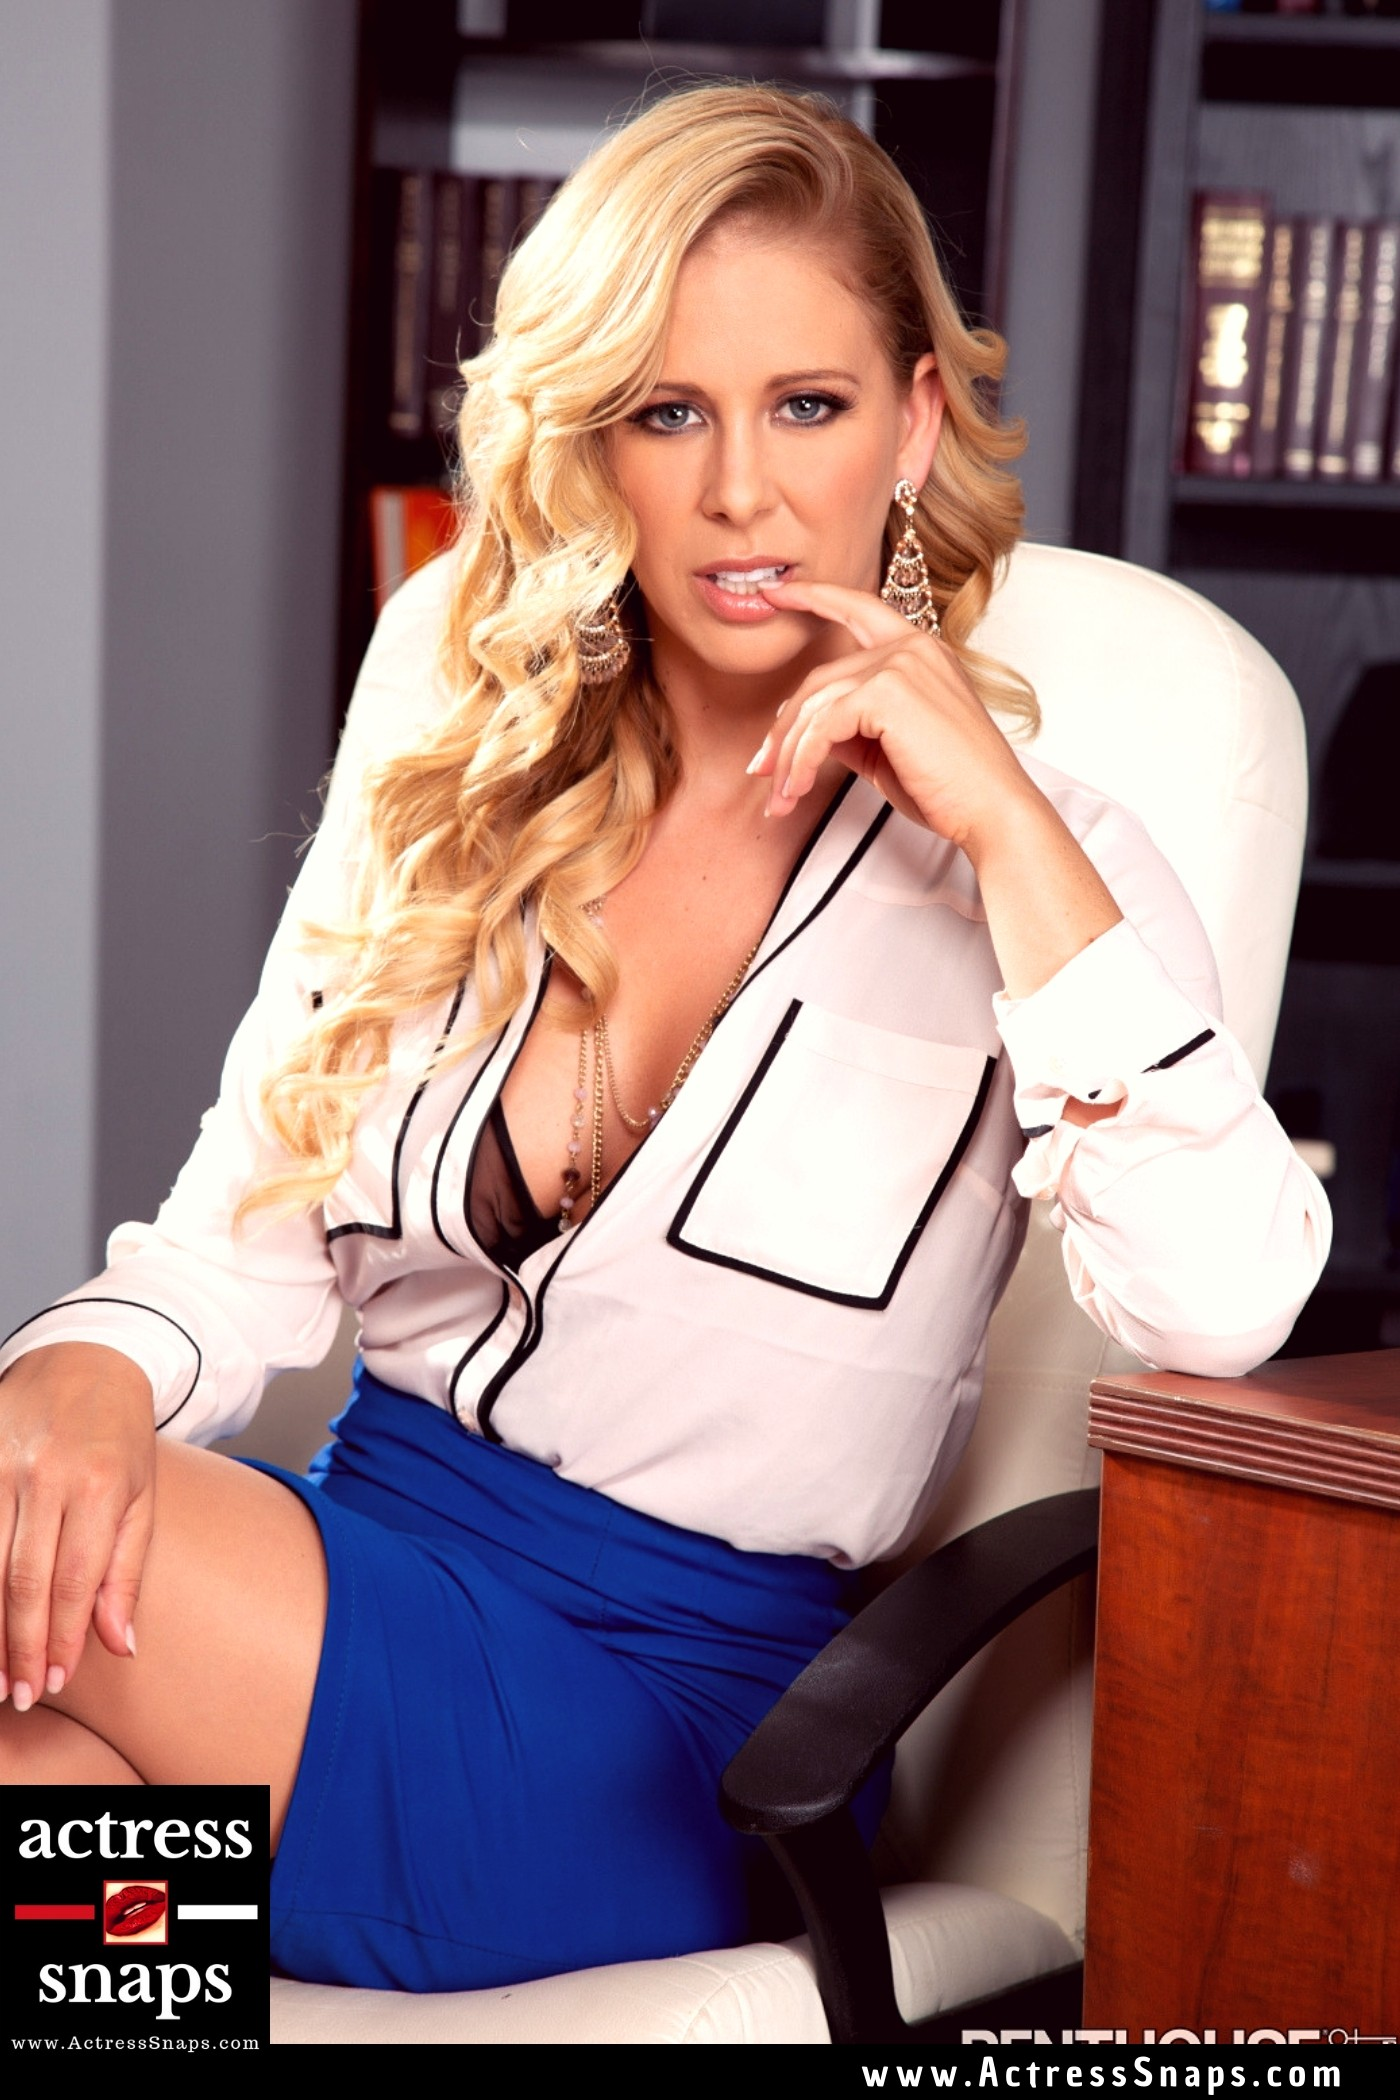 Cherie DeVille - Sexy Photos Collection - Sexy Actress Pictures | Hot Actress Pictures - ActressSnaps.com